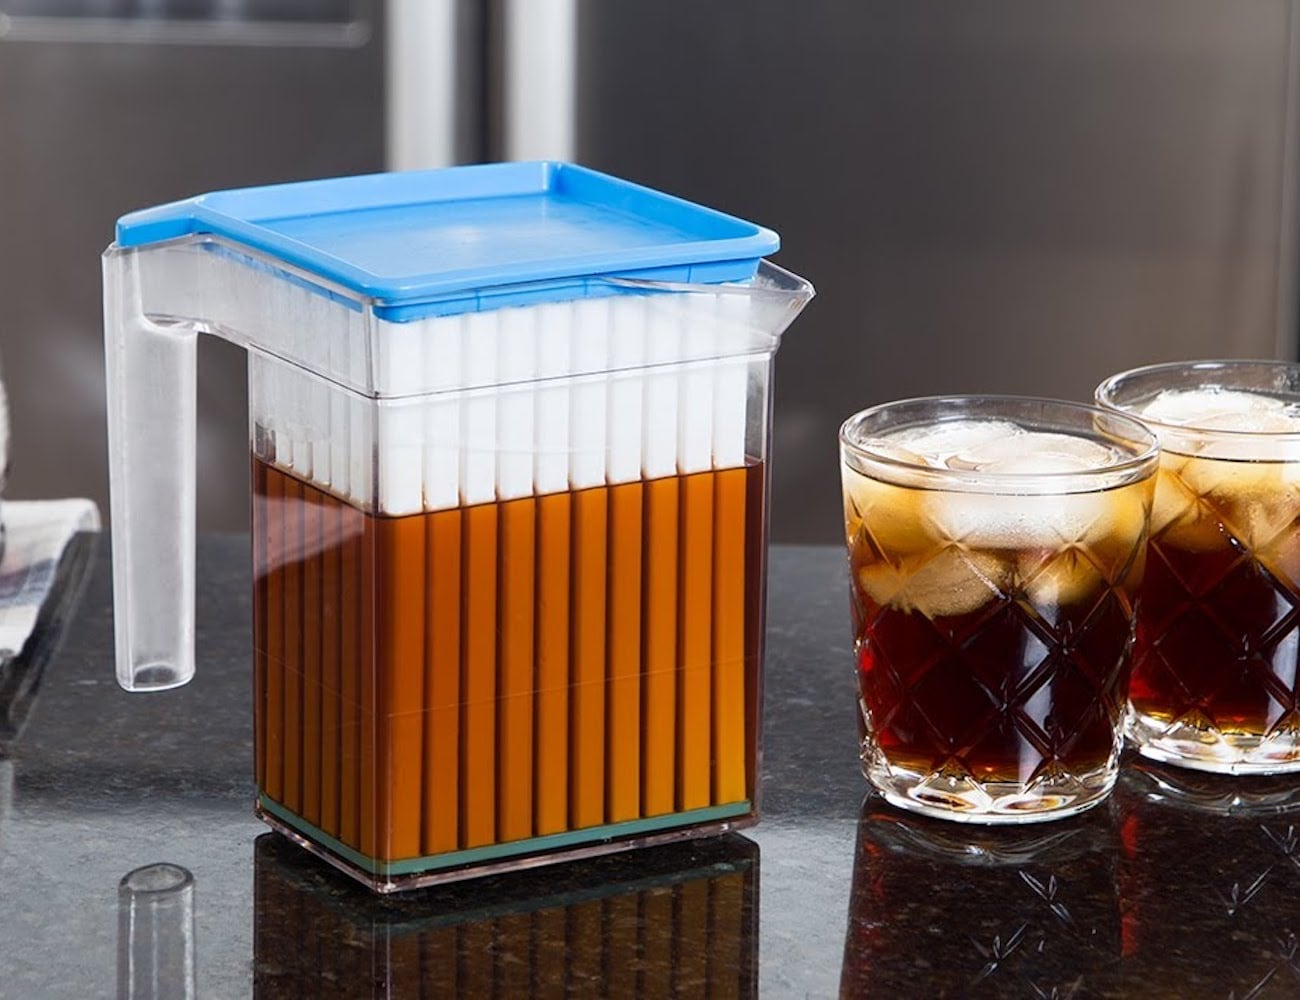 Coldwave Beverage Chiller Drink-Cooling Pitcher won't water down your drinks